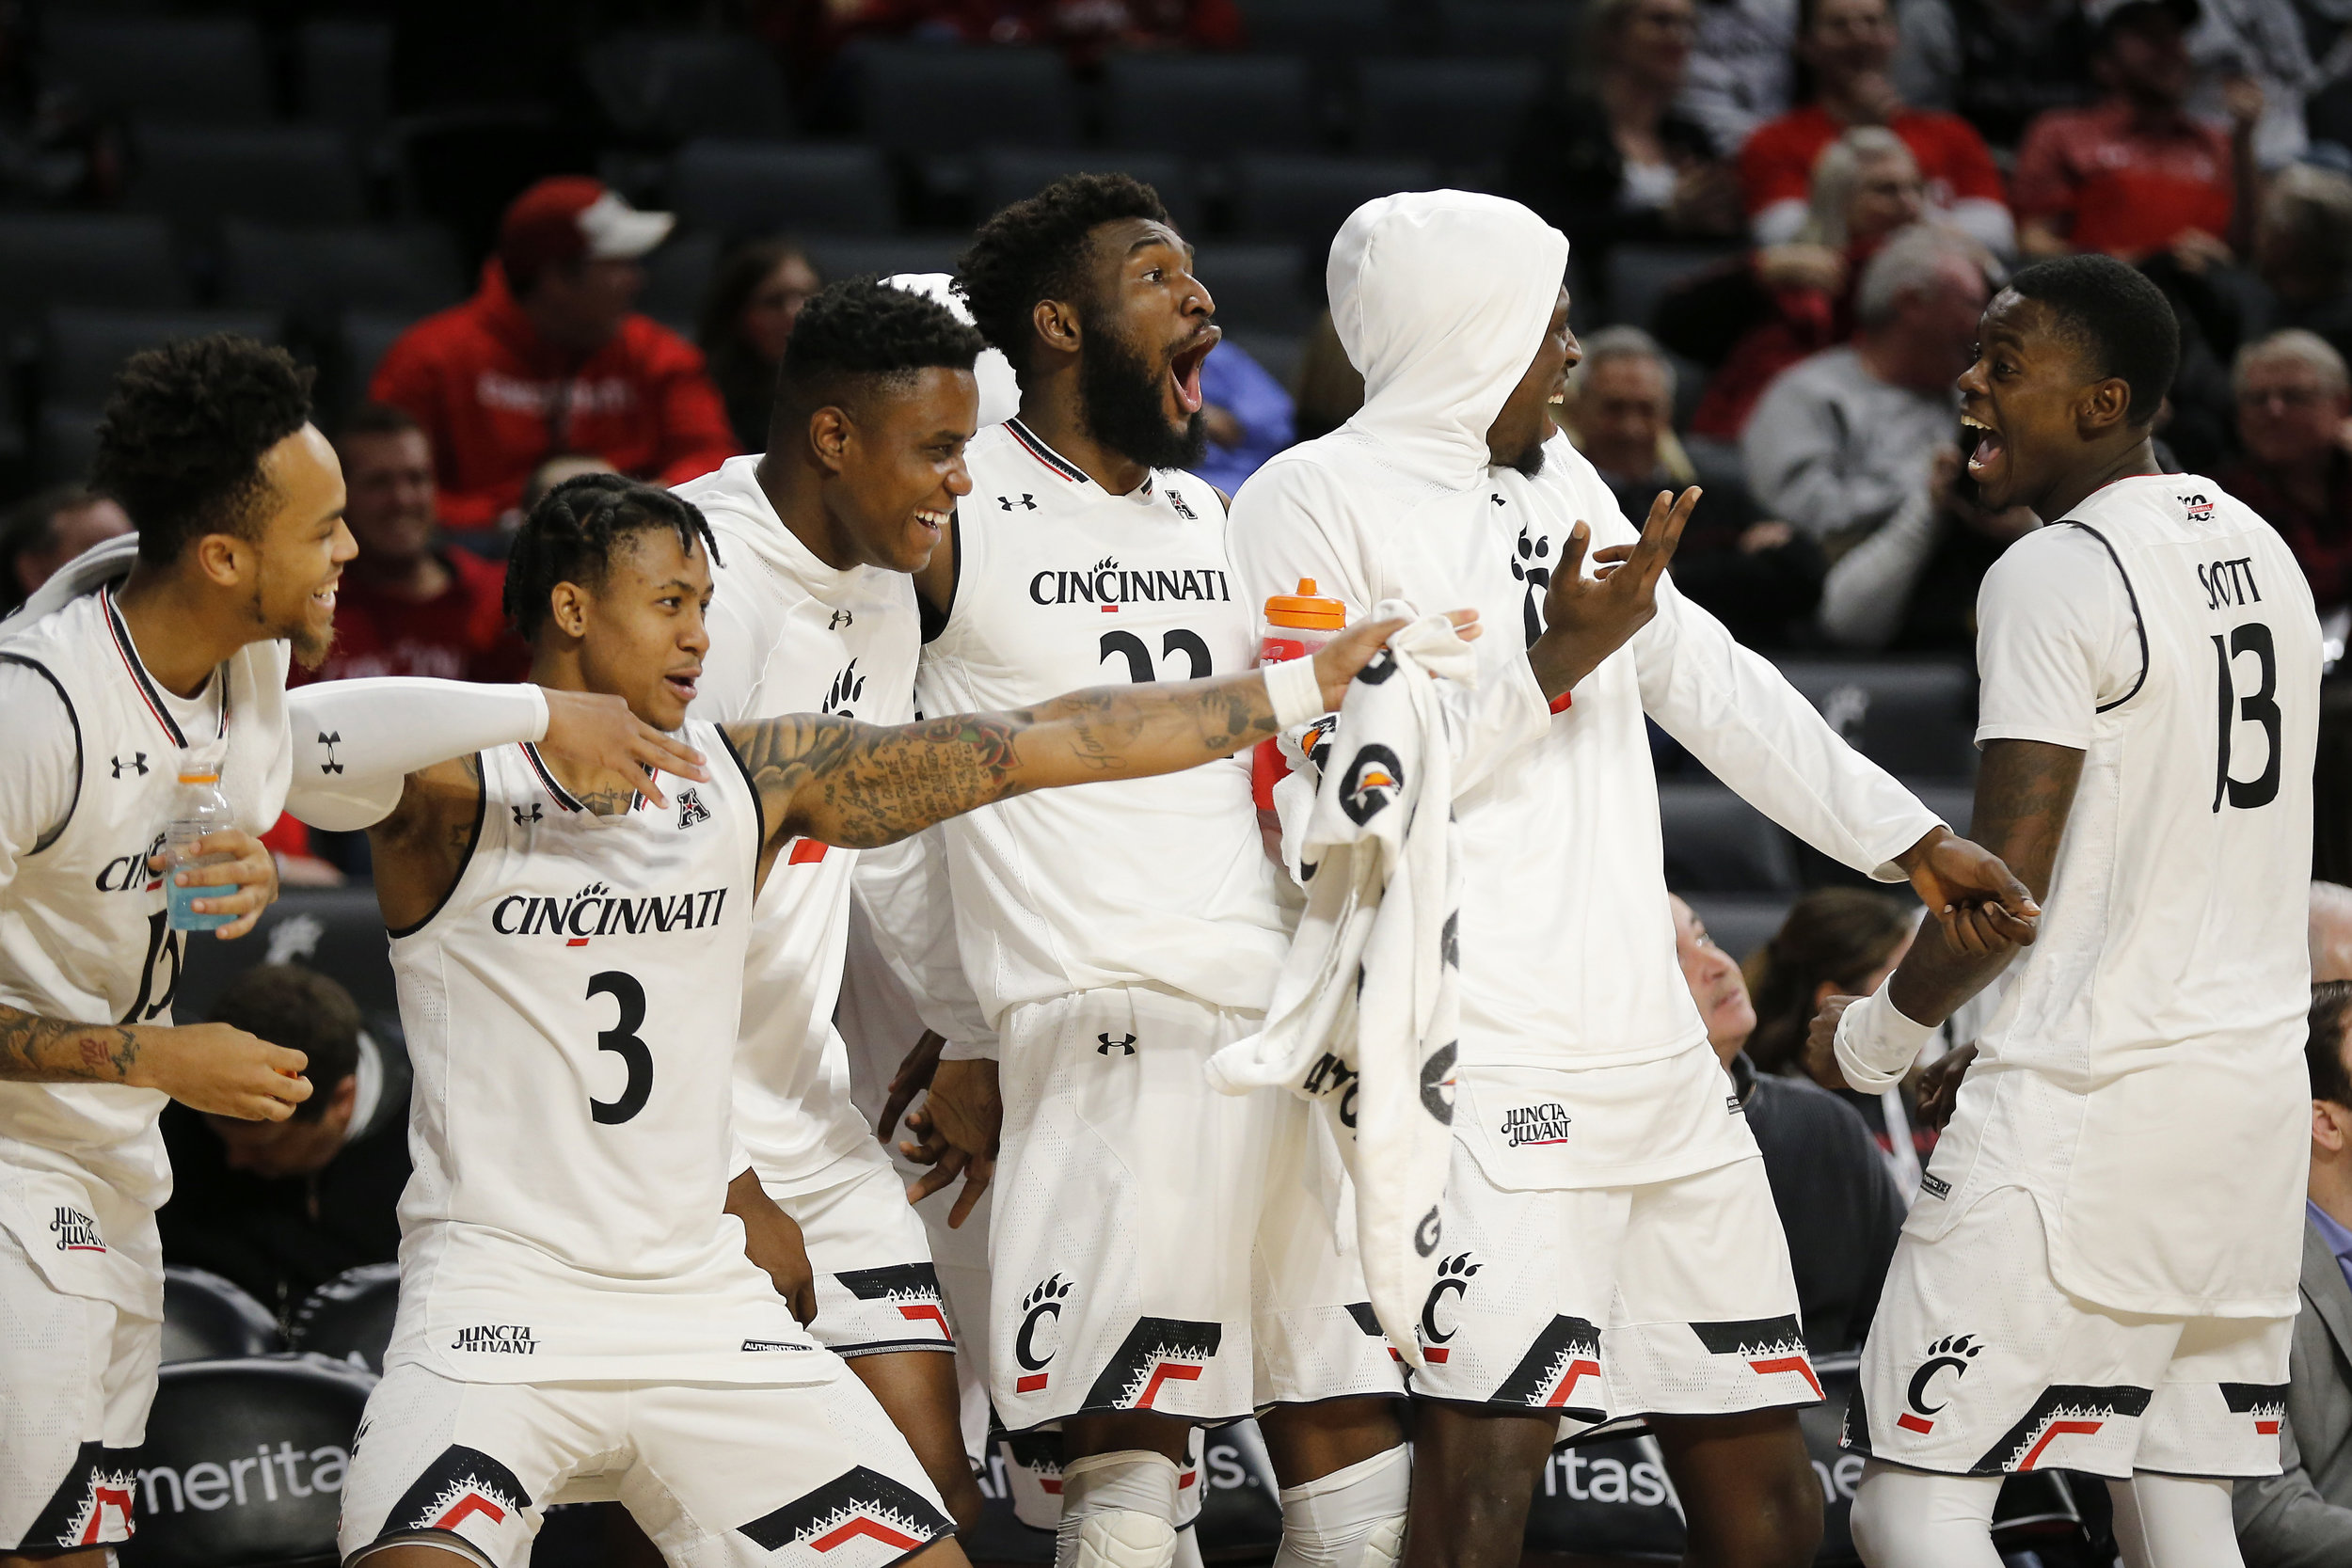 The Cincinnati Bearcats bench reacts after forward Mamoudou Diarra scores from 3-point range in a game against Arkansas-Pine Bluff on Tuesday, Nov. 27 in Cincinnati. (Sam Greene/The Cincinnati Enquirer via AP)